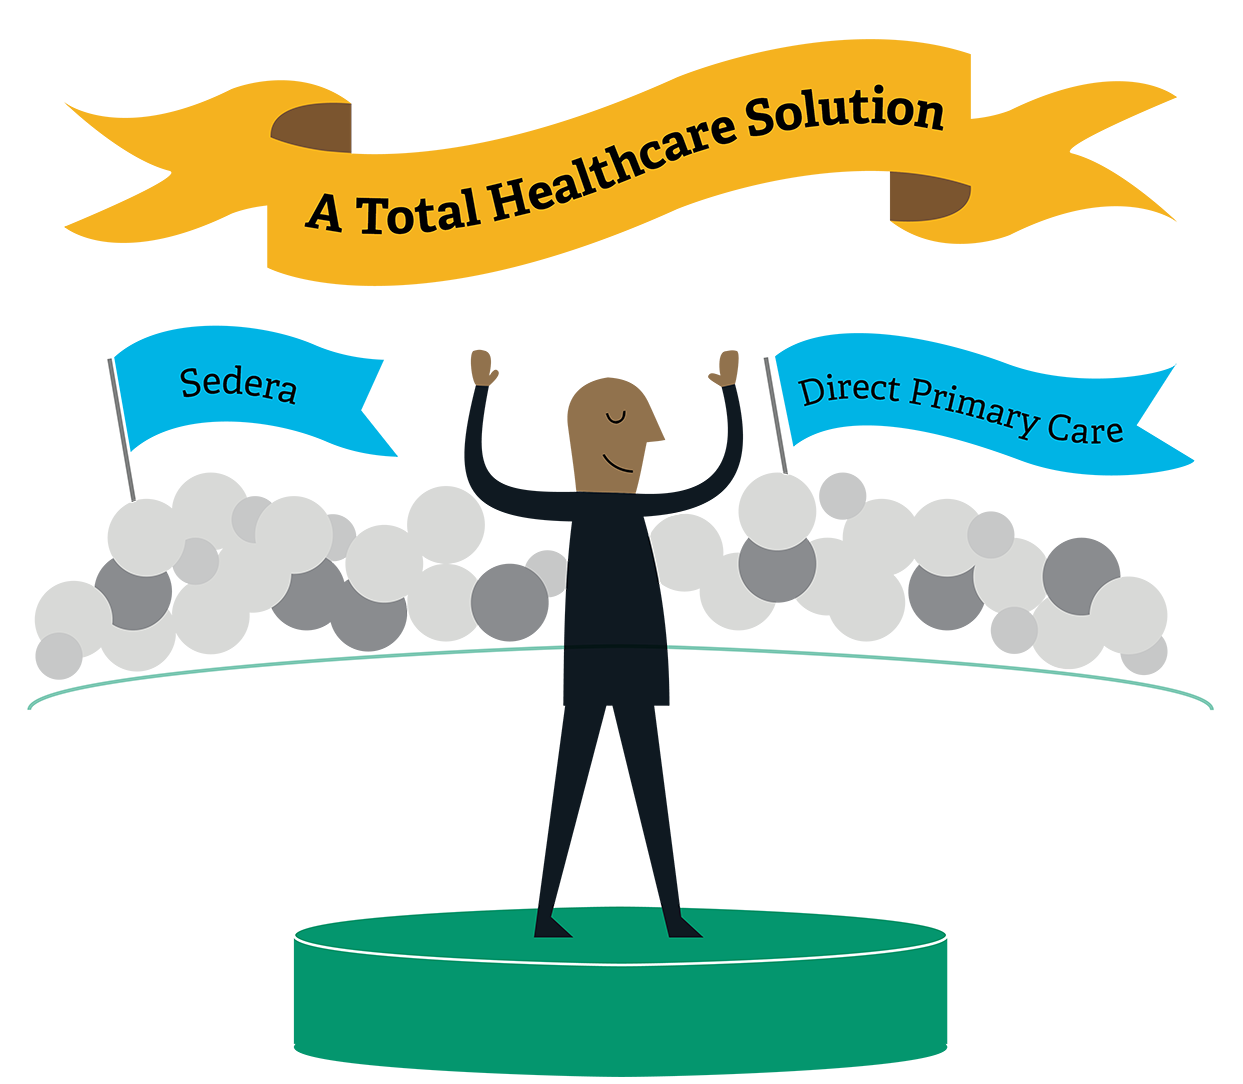 Healthcare clipart physical health. About sharing affordable sedera